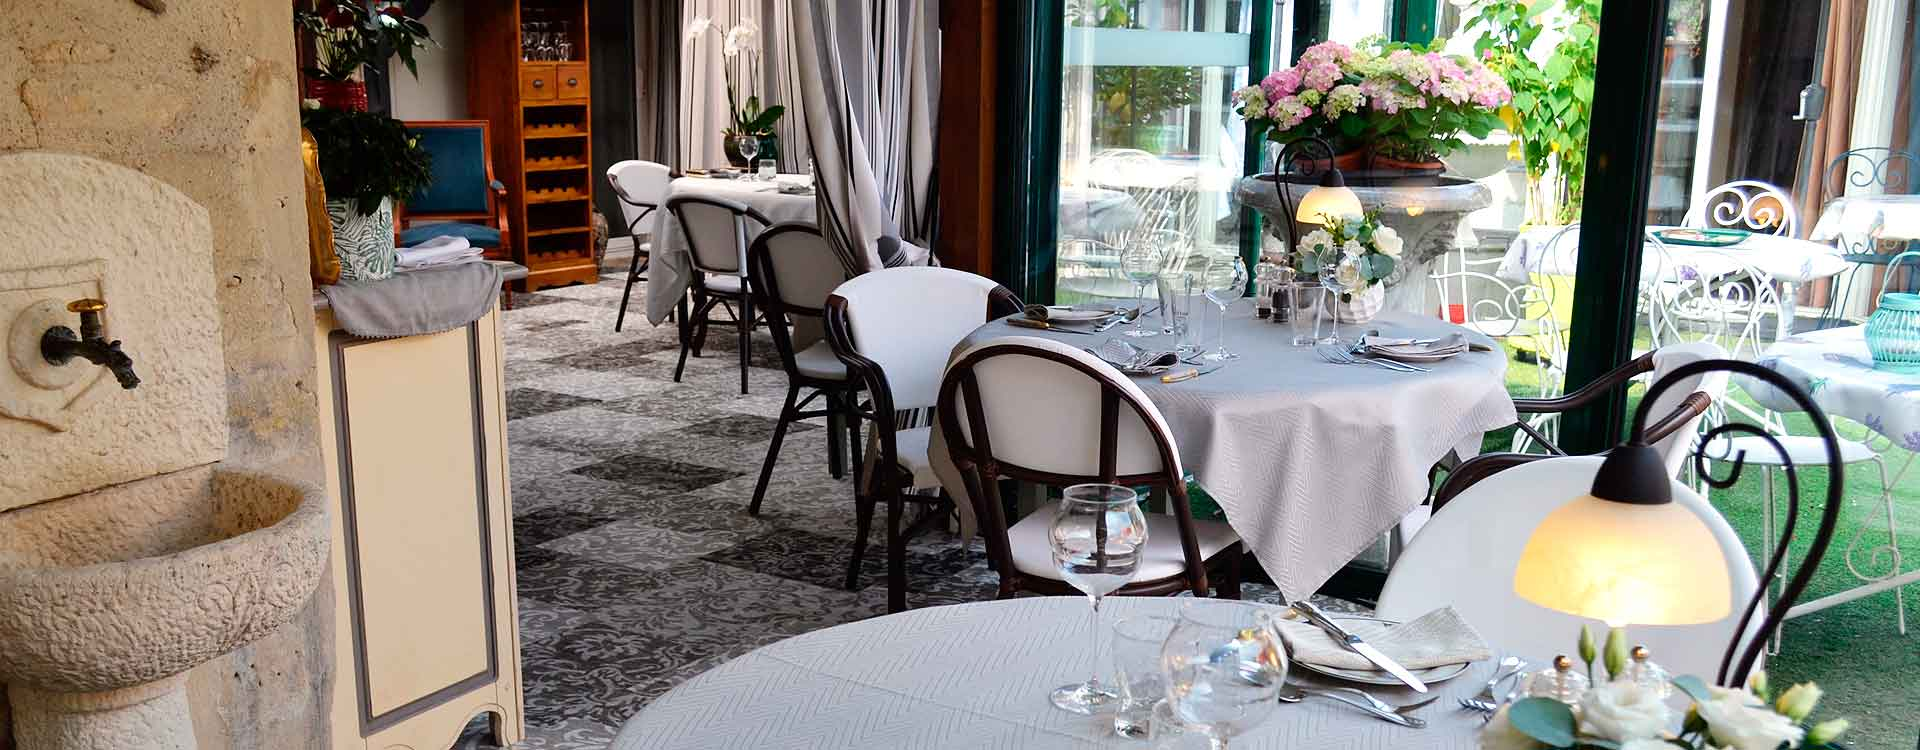 restaurant_laGrange-2